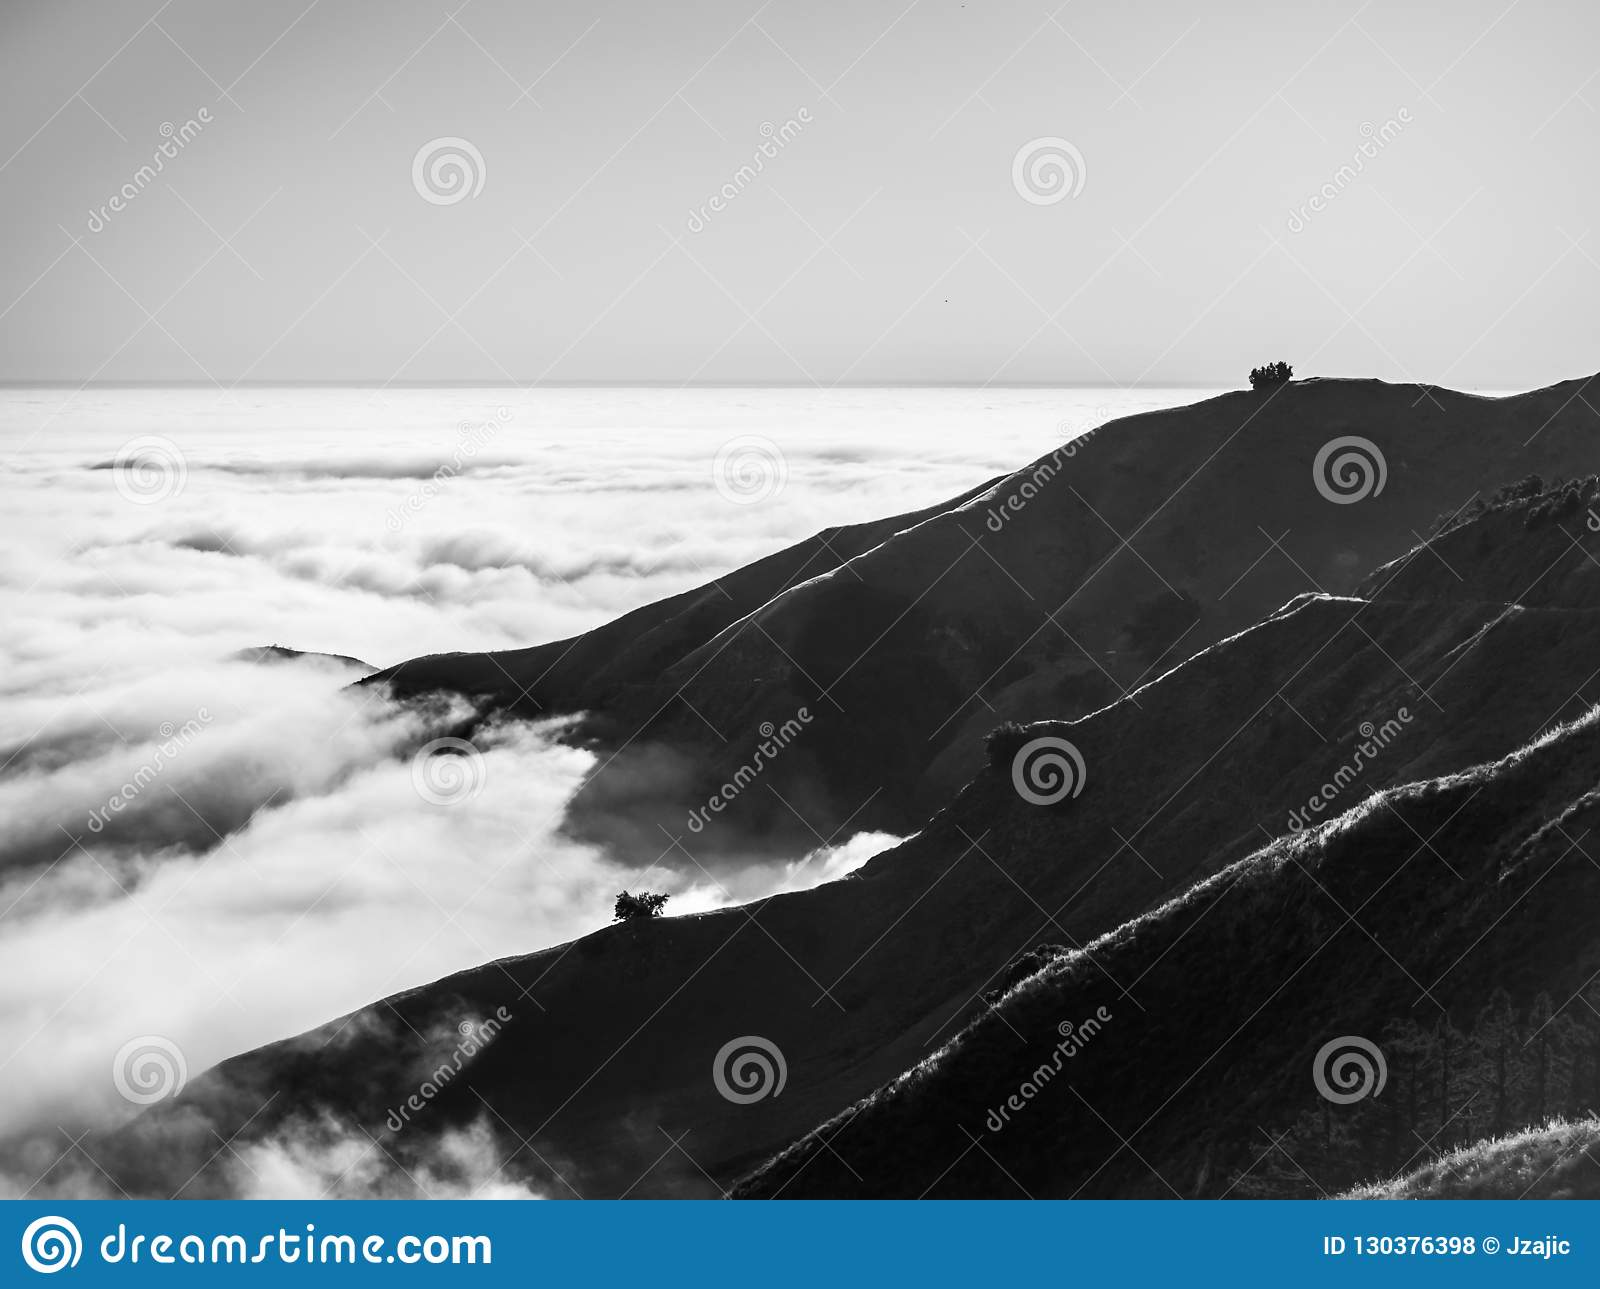 Big Sur California coast, bridge, beach, rocks, clouds, and surfing waves, black and white art photography